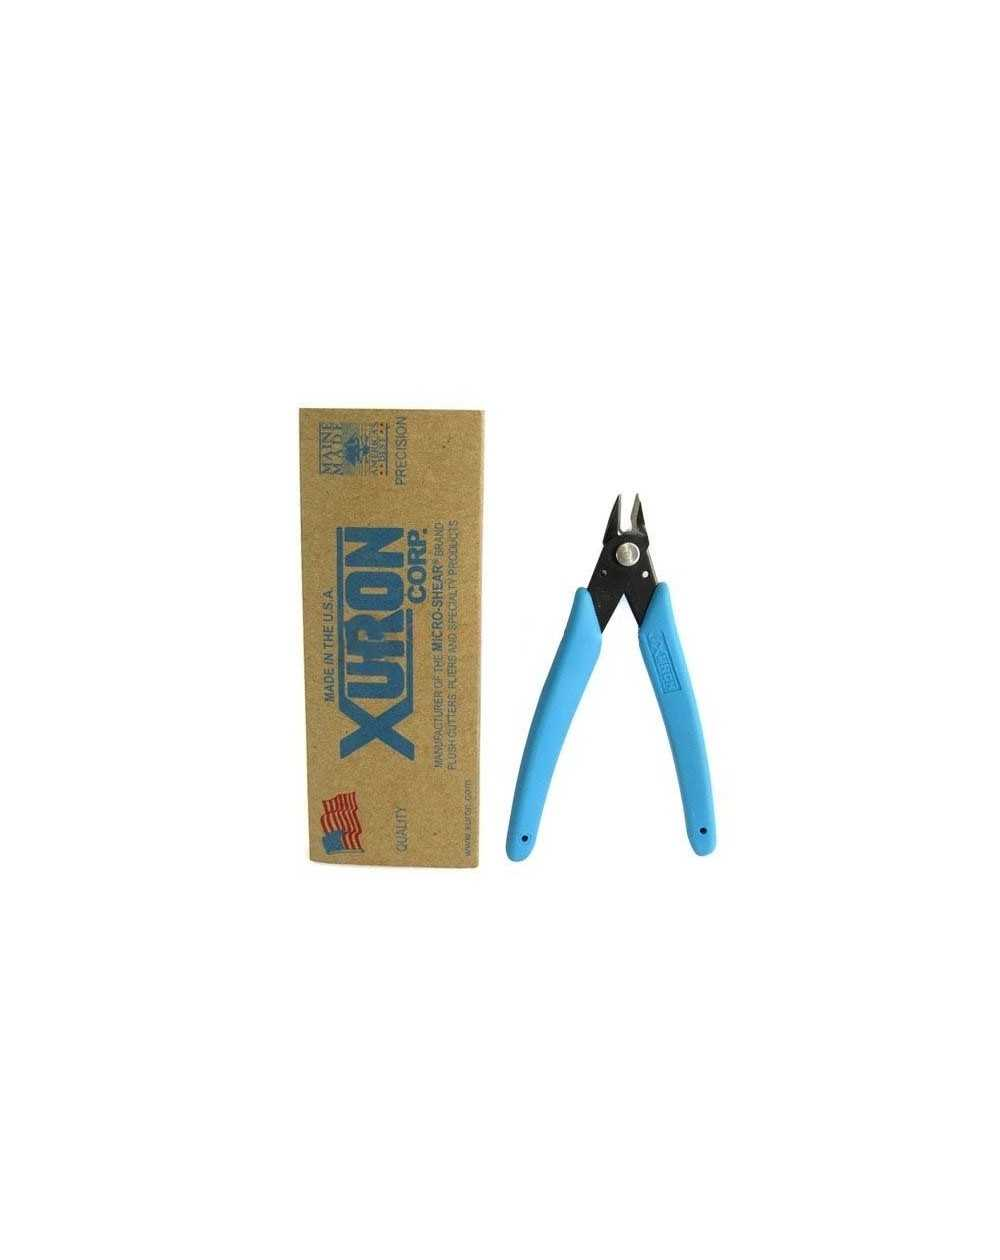 Precision cutting pliers - Xuron